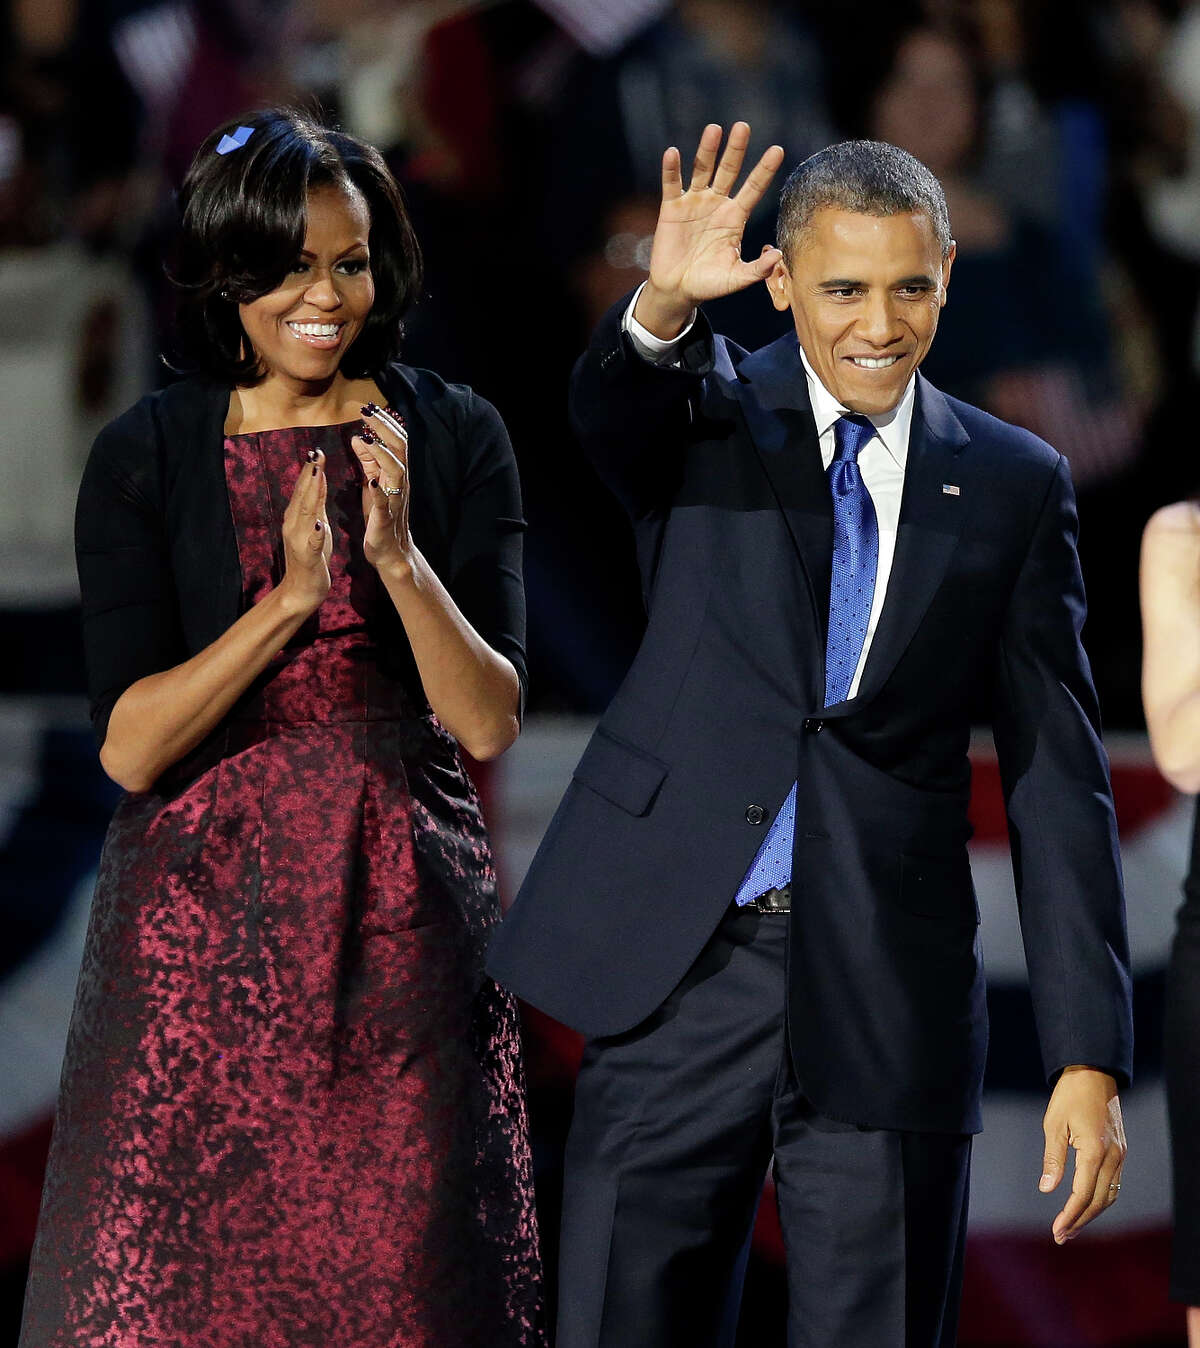 President Barack Obama and first lady Michelle Obama wave at his election night party Wednesday, Nov. 7, 2012, in Chicago. President Obama defeated Republican challenger former Massachusetts Gov. Mitt Romney.